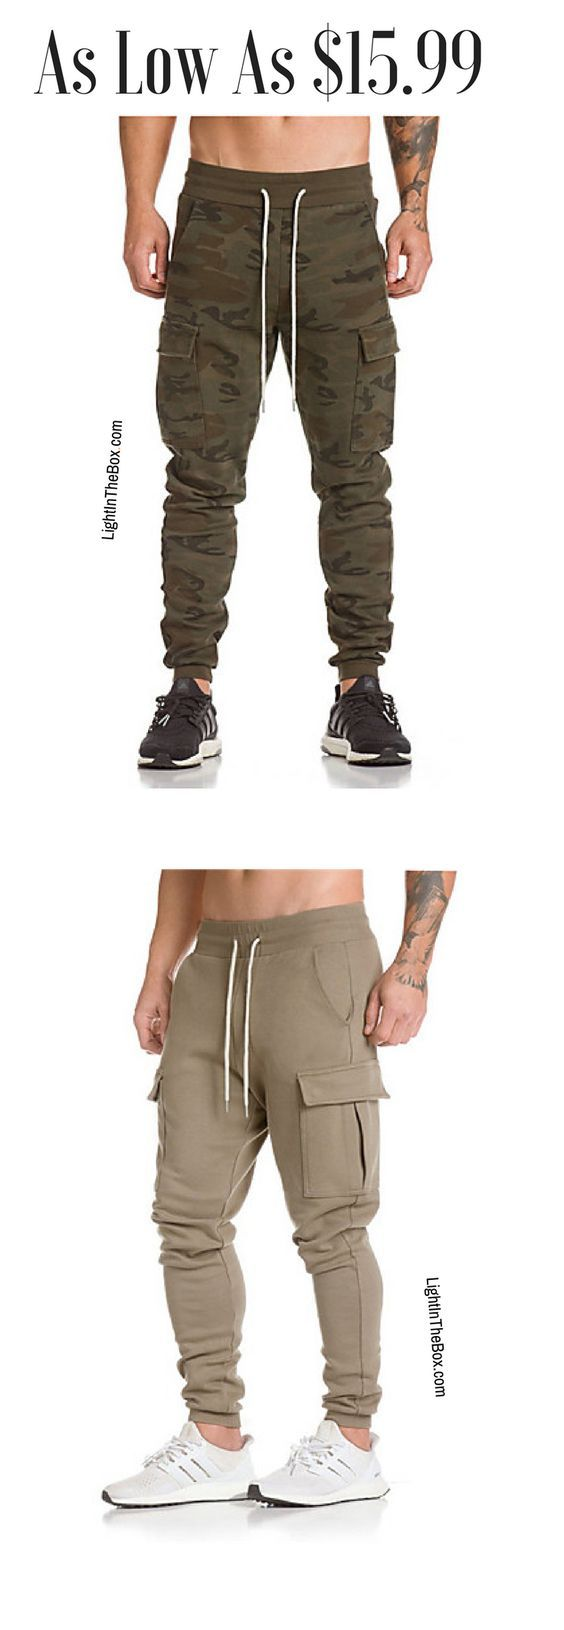 Casual sporty men pants in various colours - beige, black, grey, khaki green